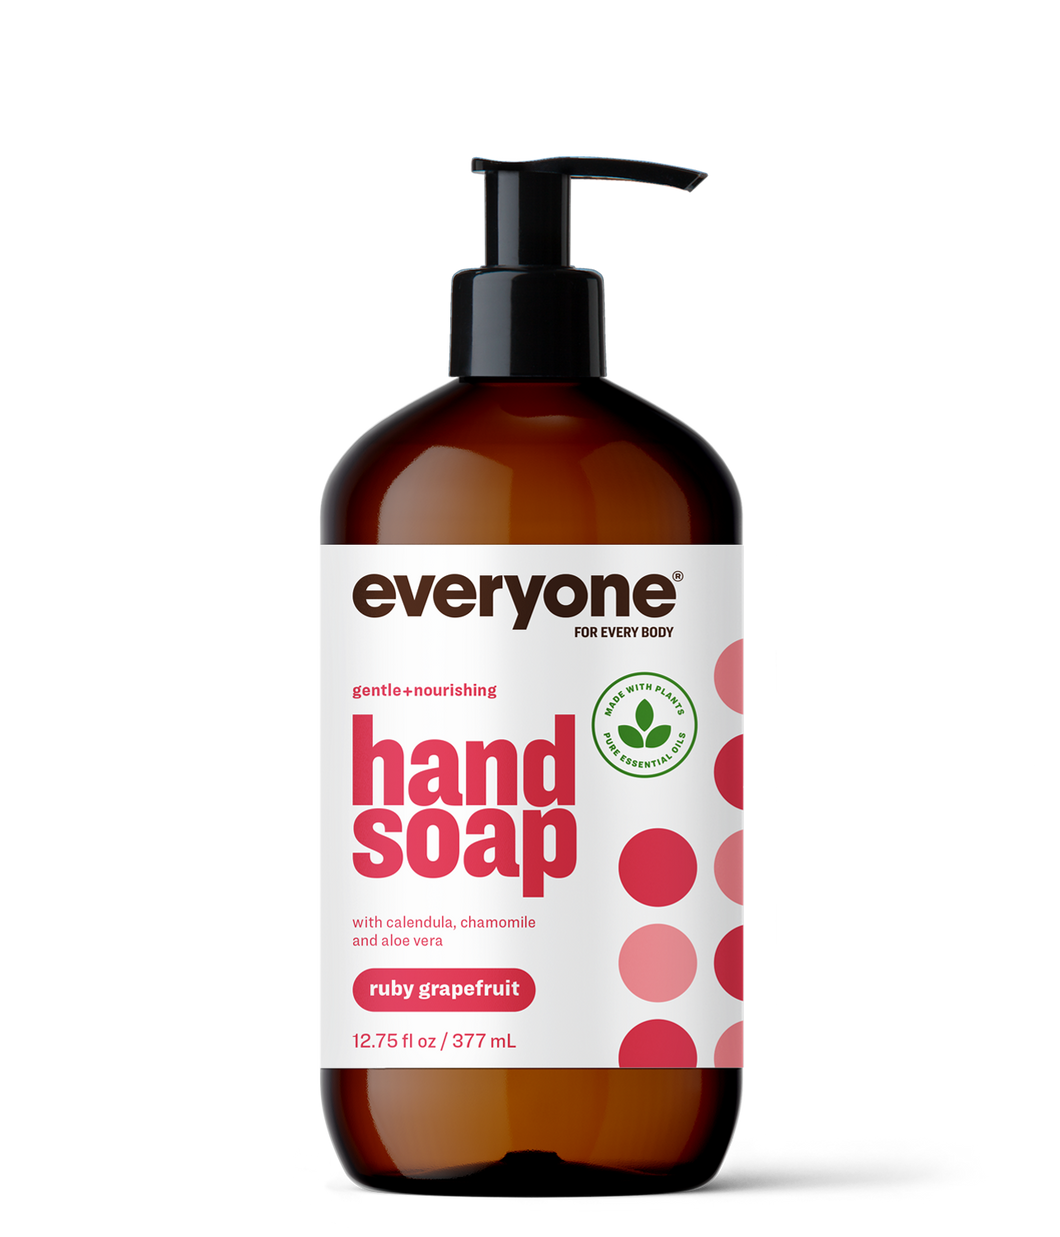 EO / Everyone hand and body Products